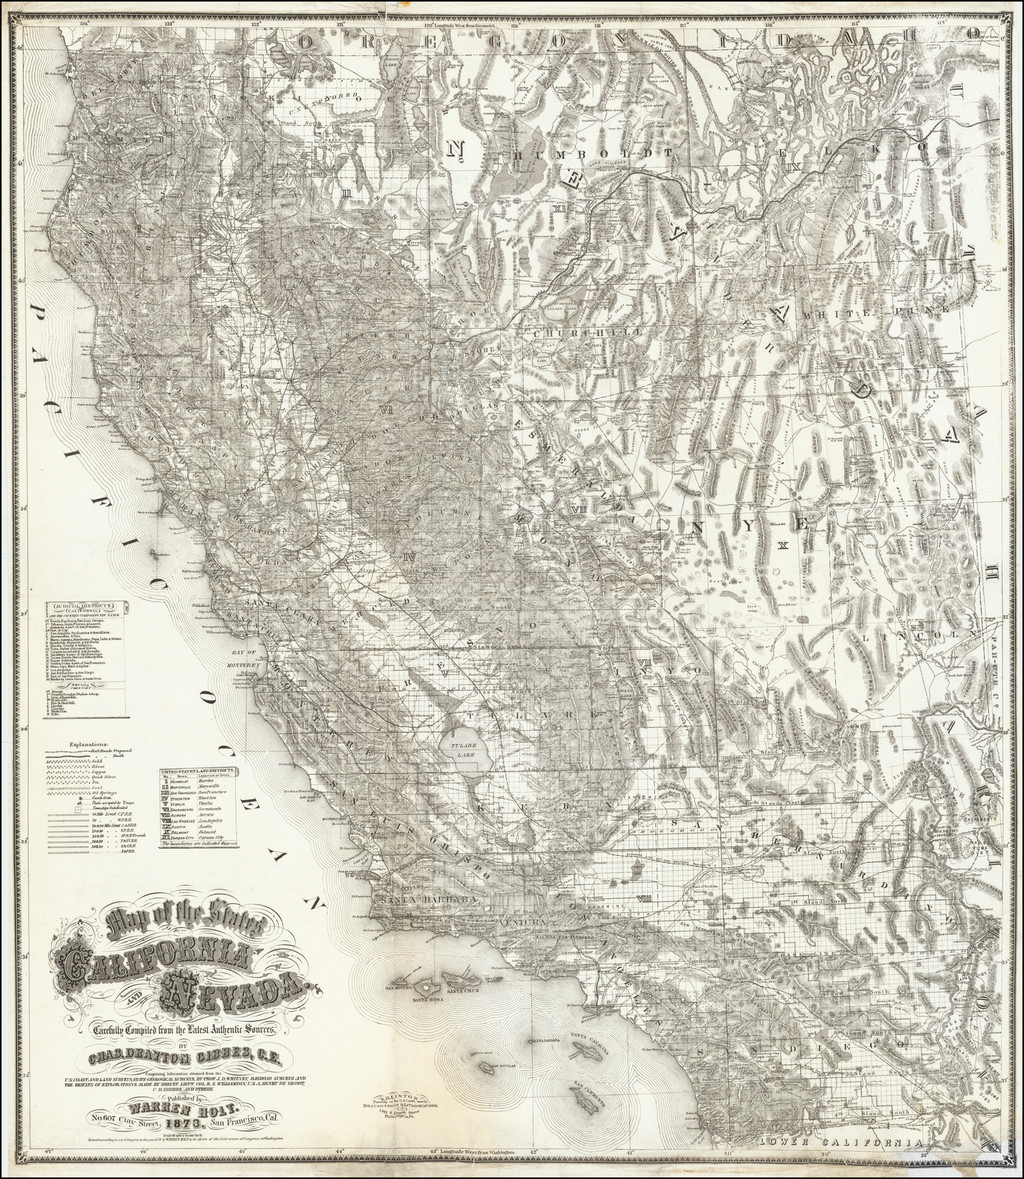 Map of the States of California and Nevada Carefully Compiled from the Latest Authentic Sources By Charles Drayton Gibbes, C.E. . . . 1873   By Warren Holt / Charles Drayton Gibbes